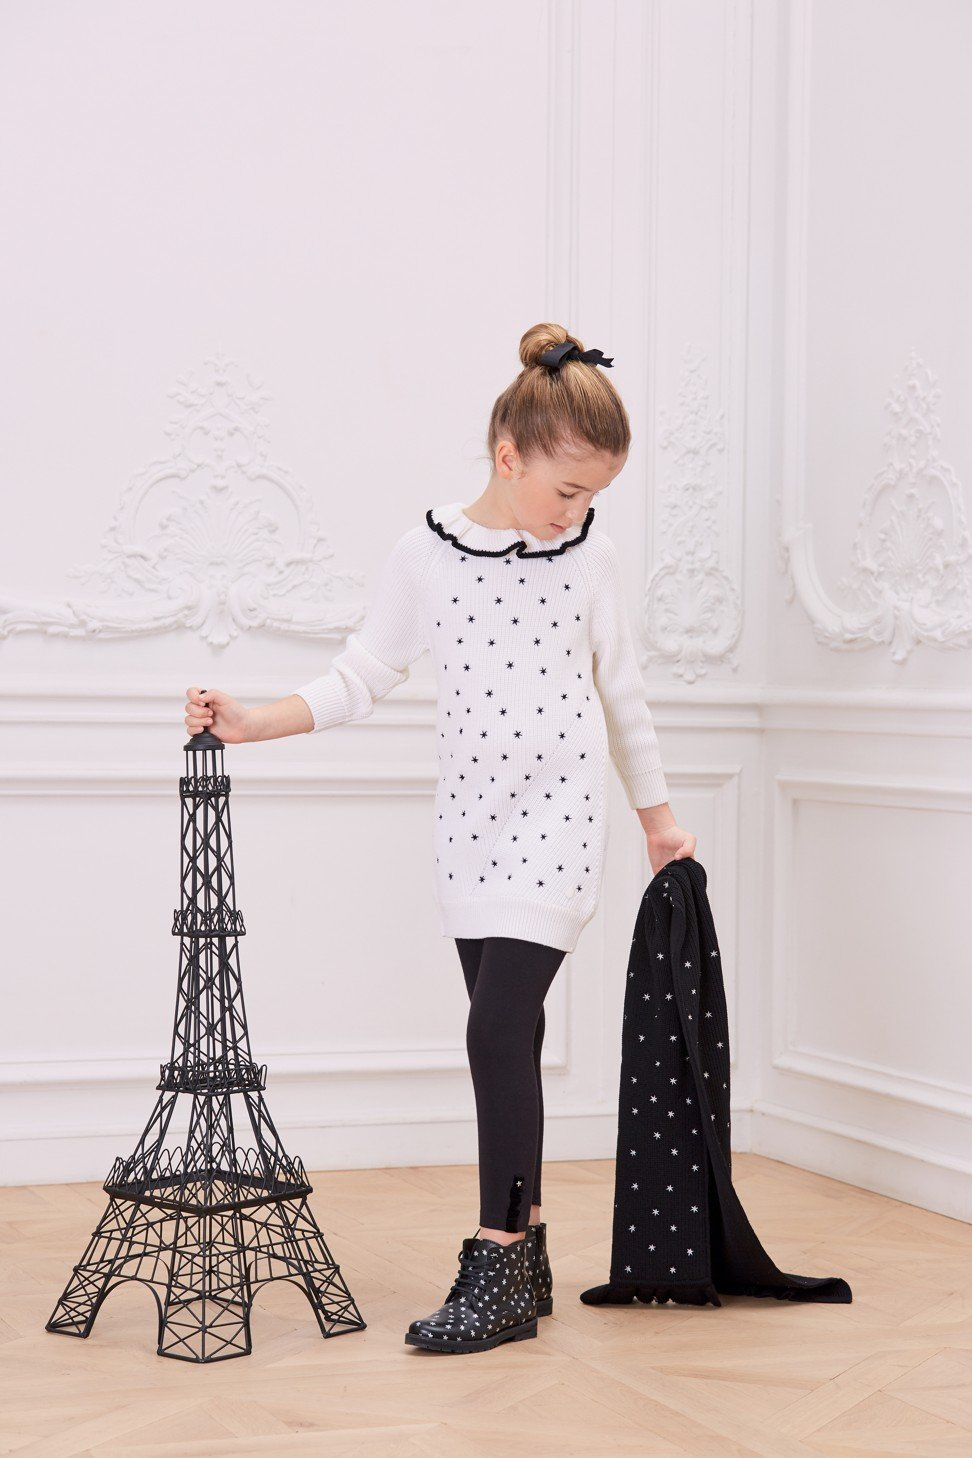 bee7a1f1e9b Why Chinese parents invest in luxury children s wear